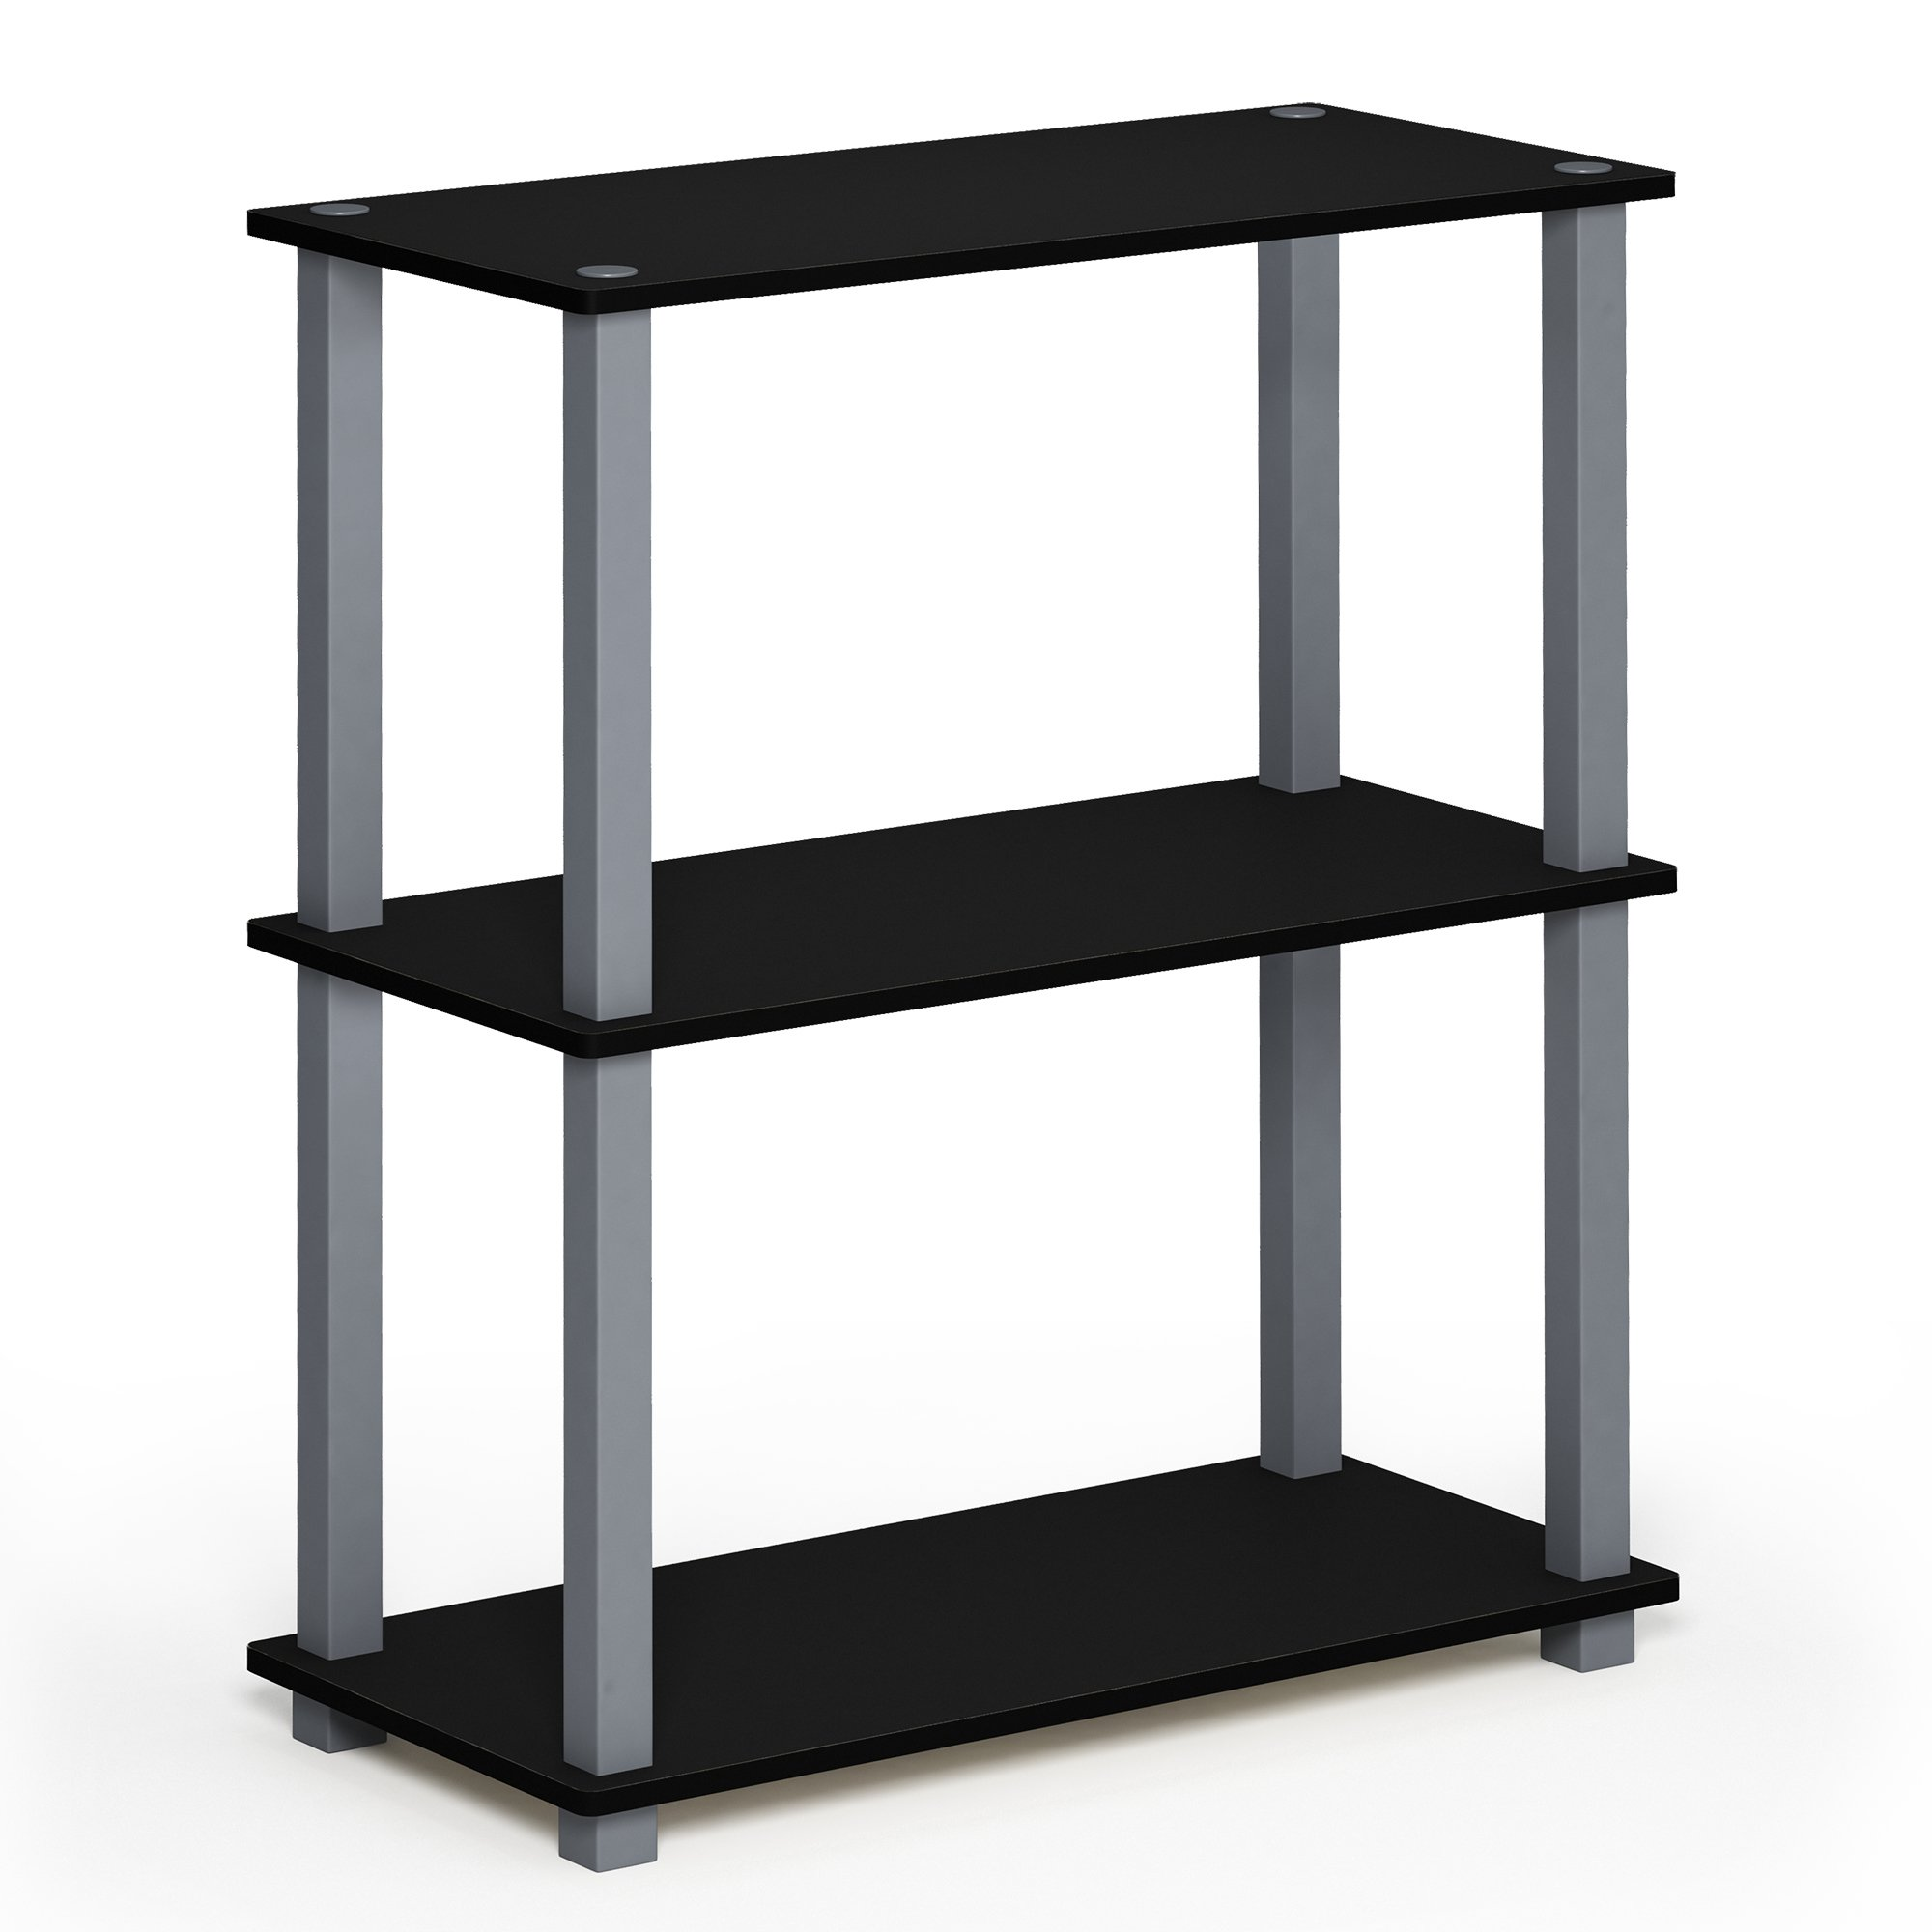 Furinno 18025BK/GY Turn-S-Tube 3 Compact Multipurpose Shelf with Square, 3-Tier, Black/Grey Square Tube